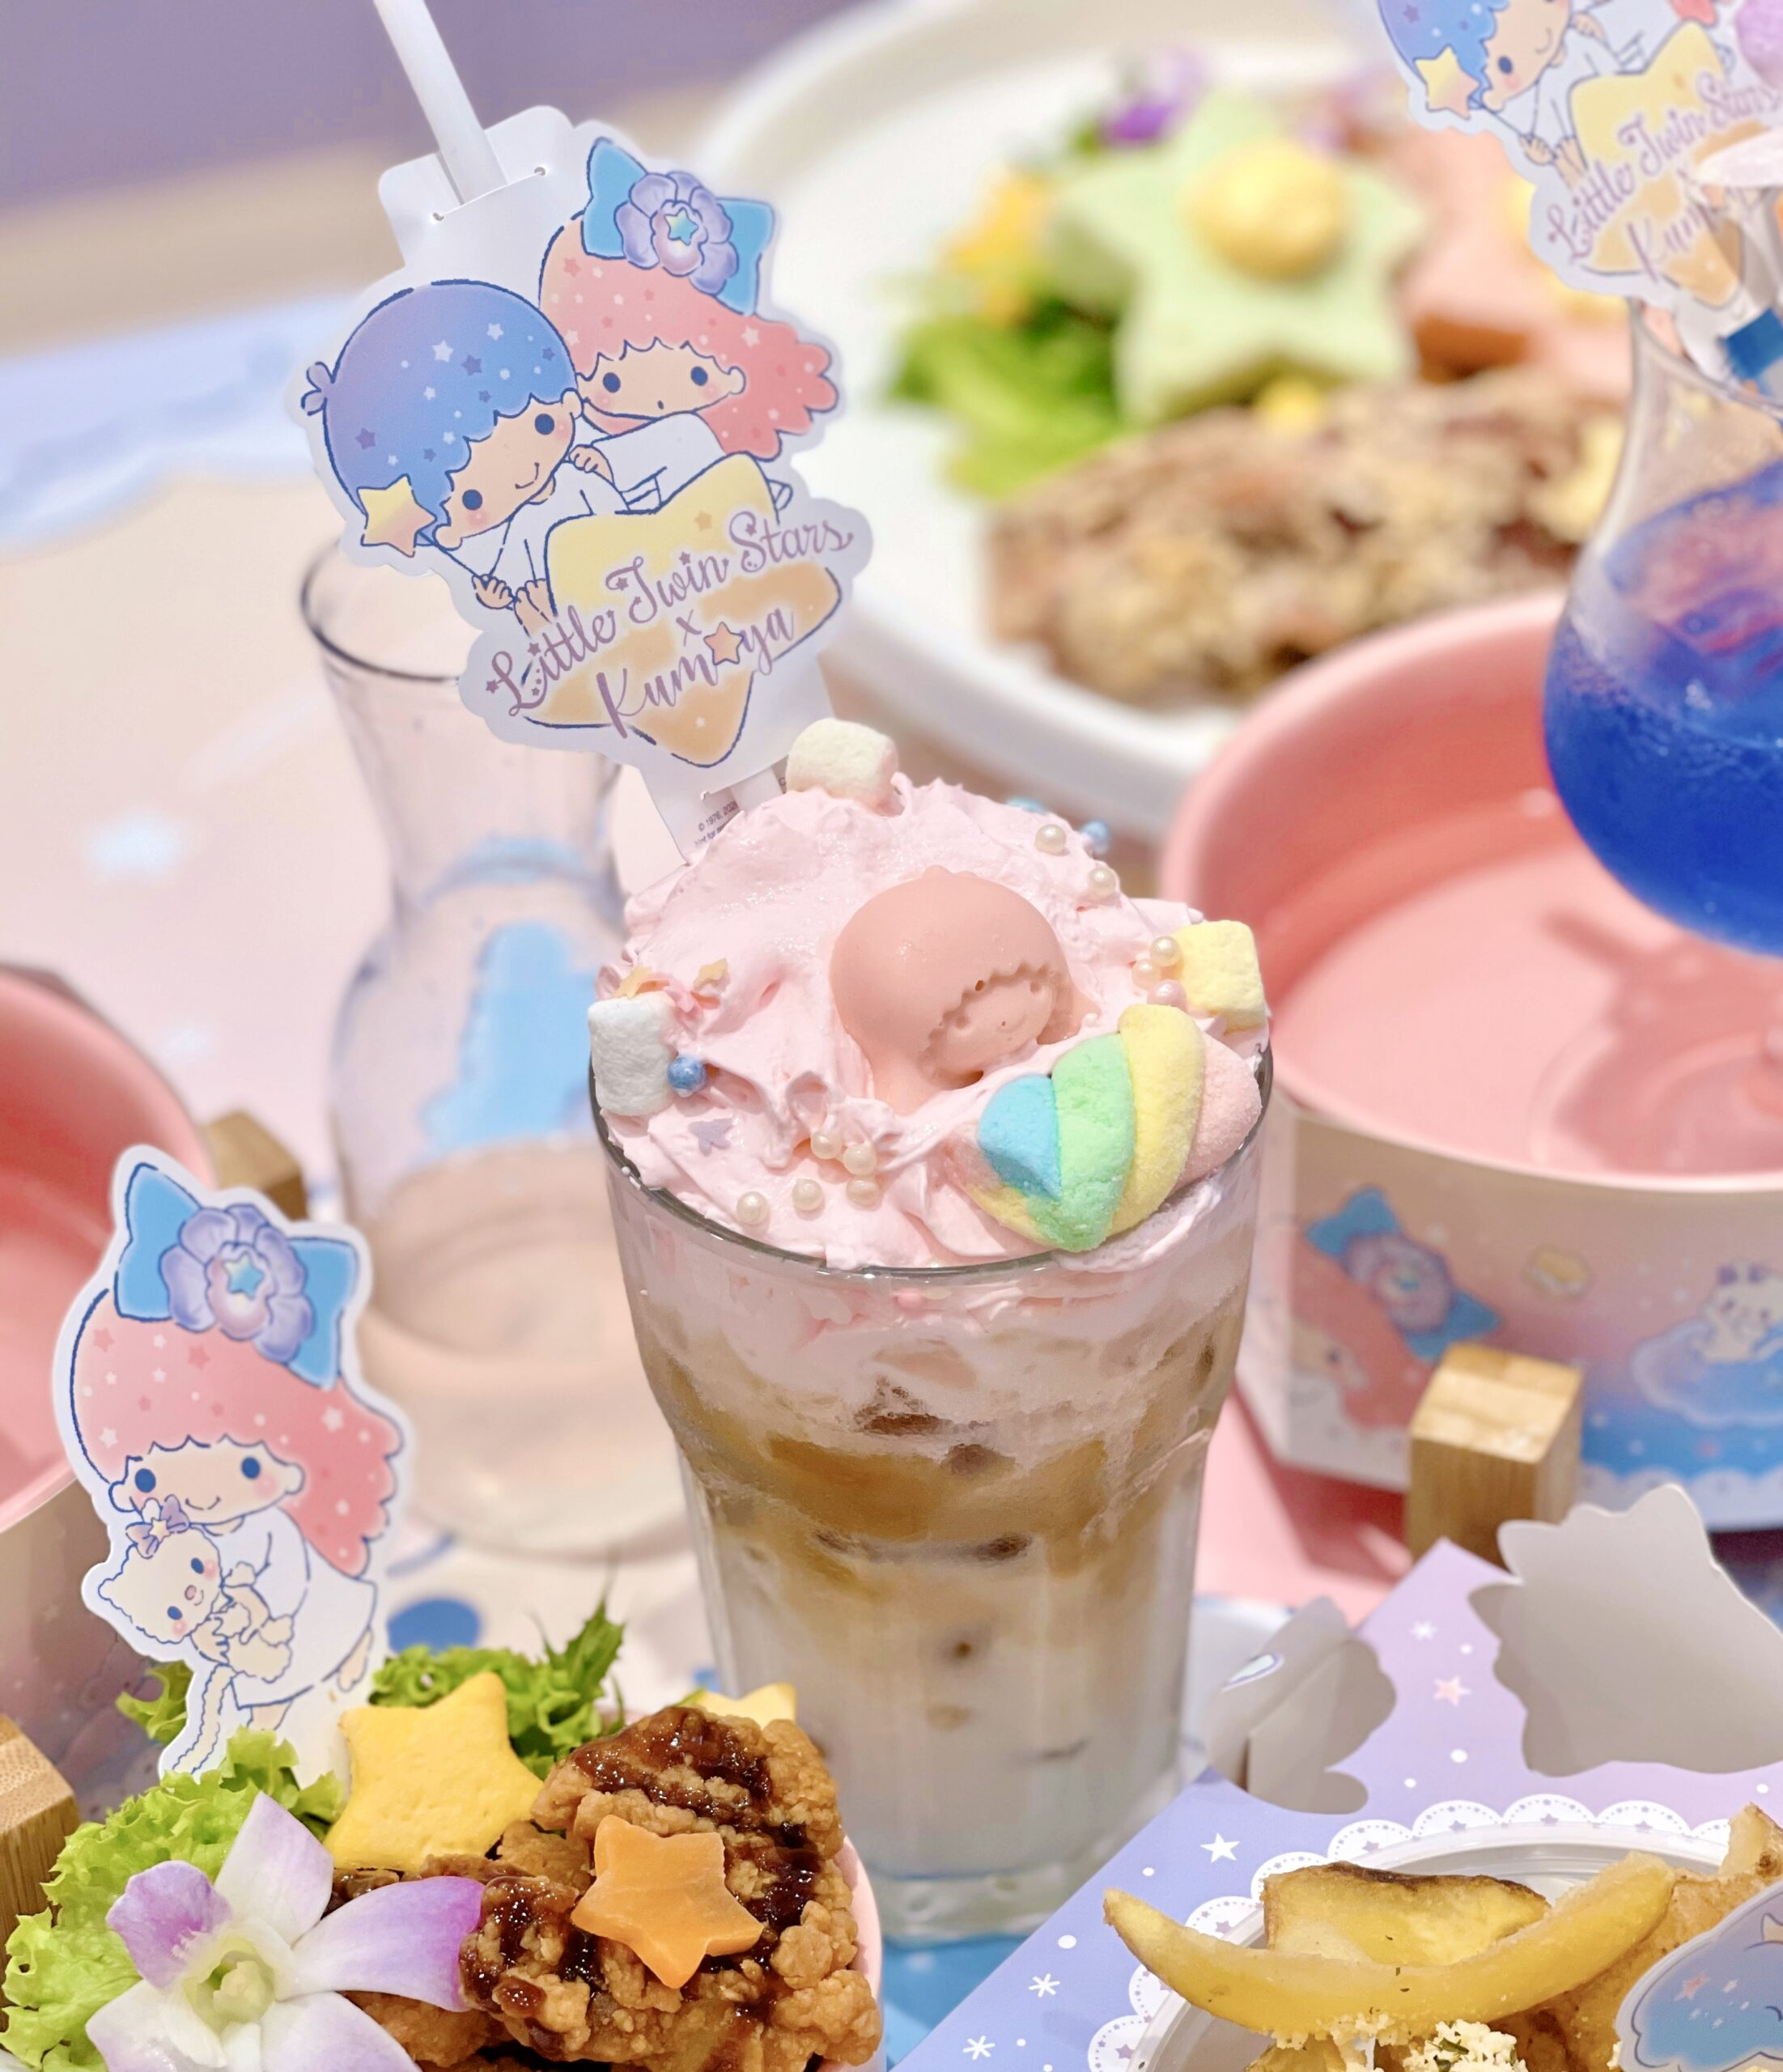 Kumoya x Little Twins Star SG instagrammable cafe